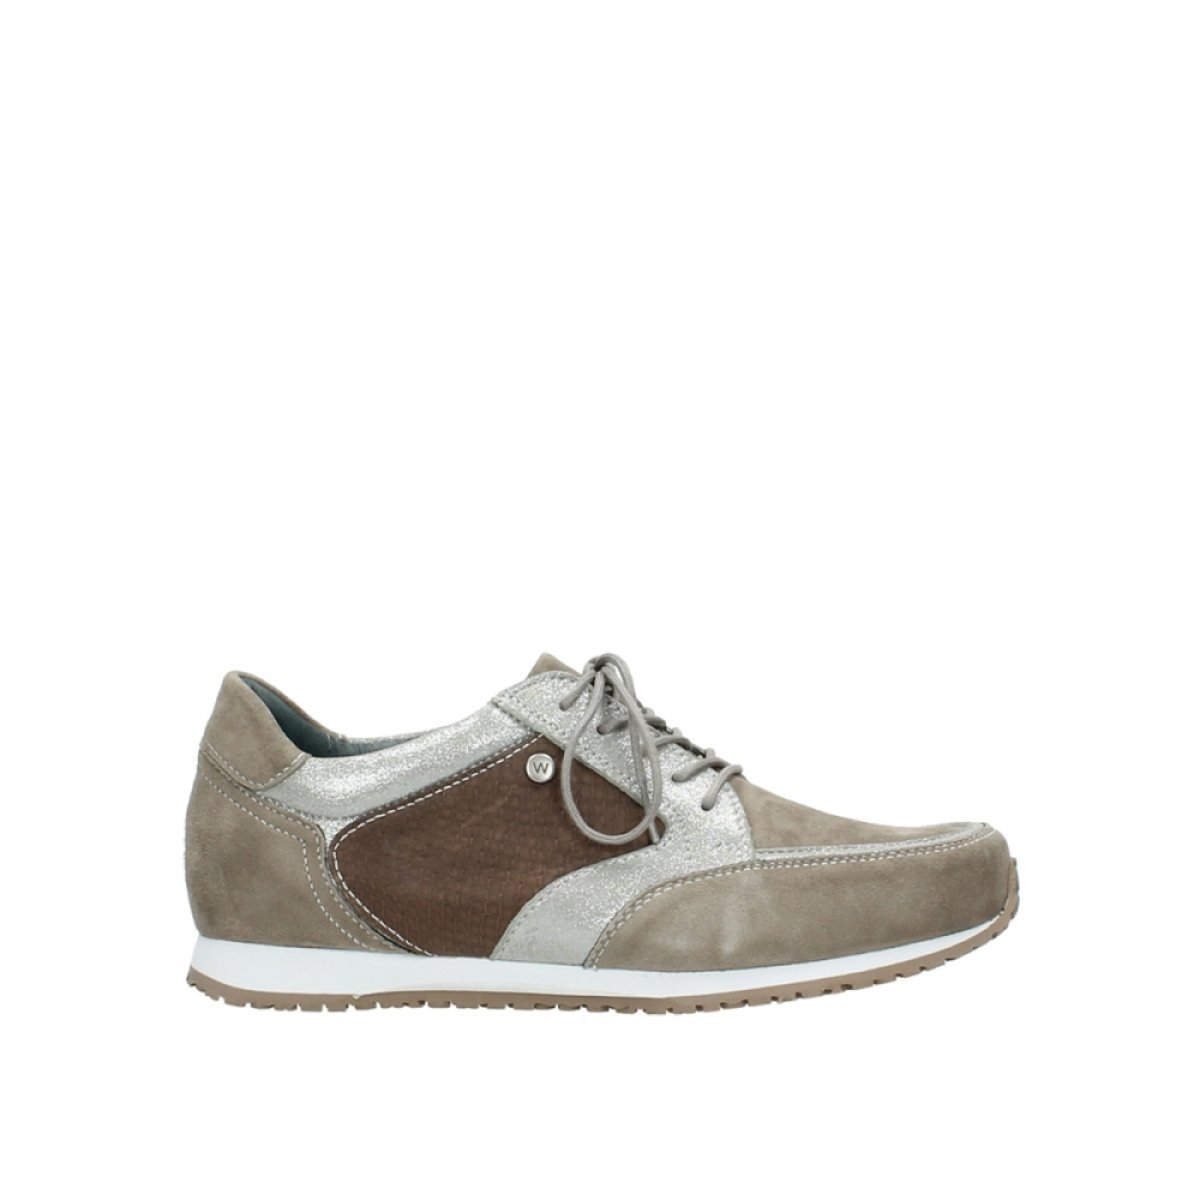 Wolky Comfort Sneakers Ewood B00NLVYRLS 38 M EU|40150 Taupe Suede